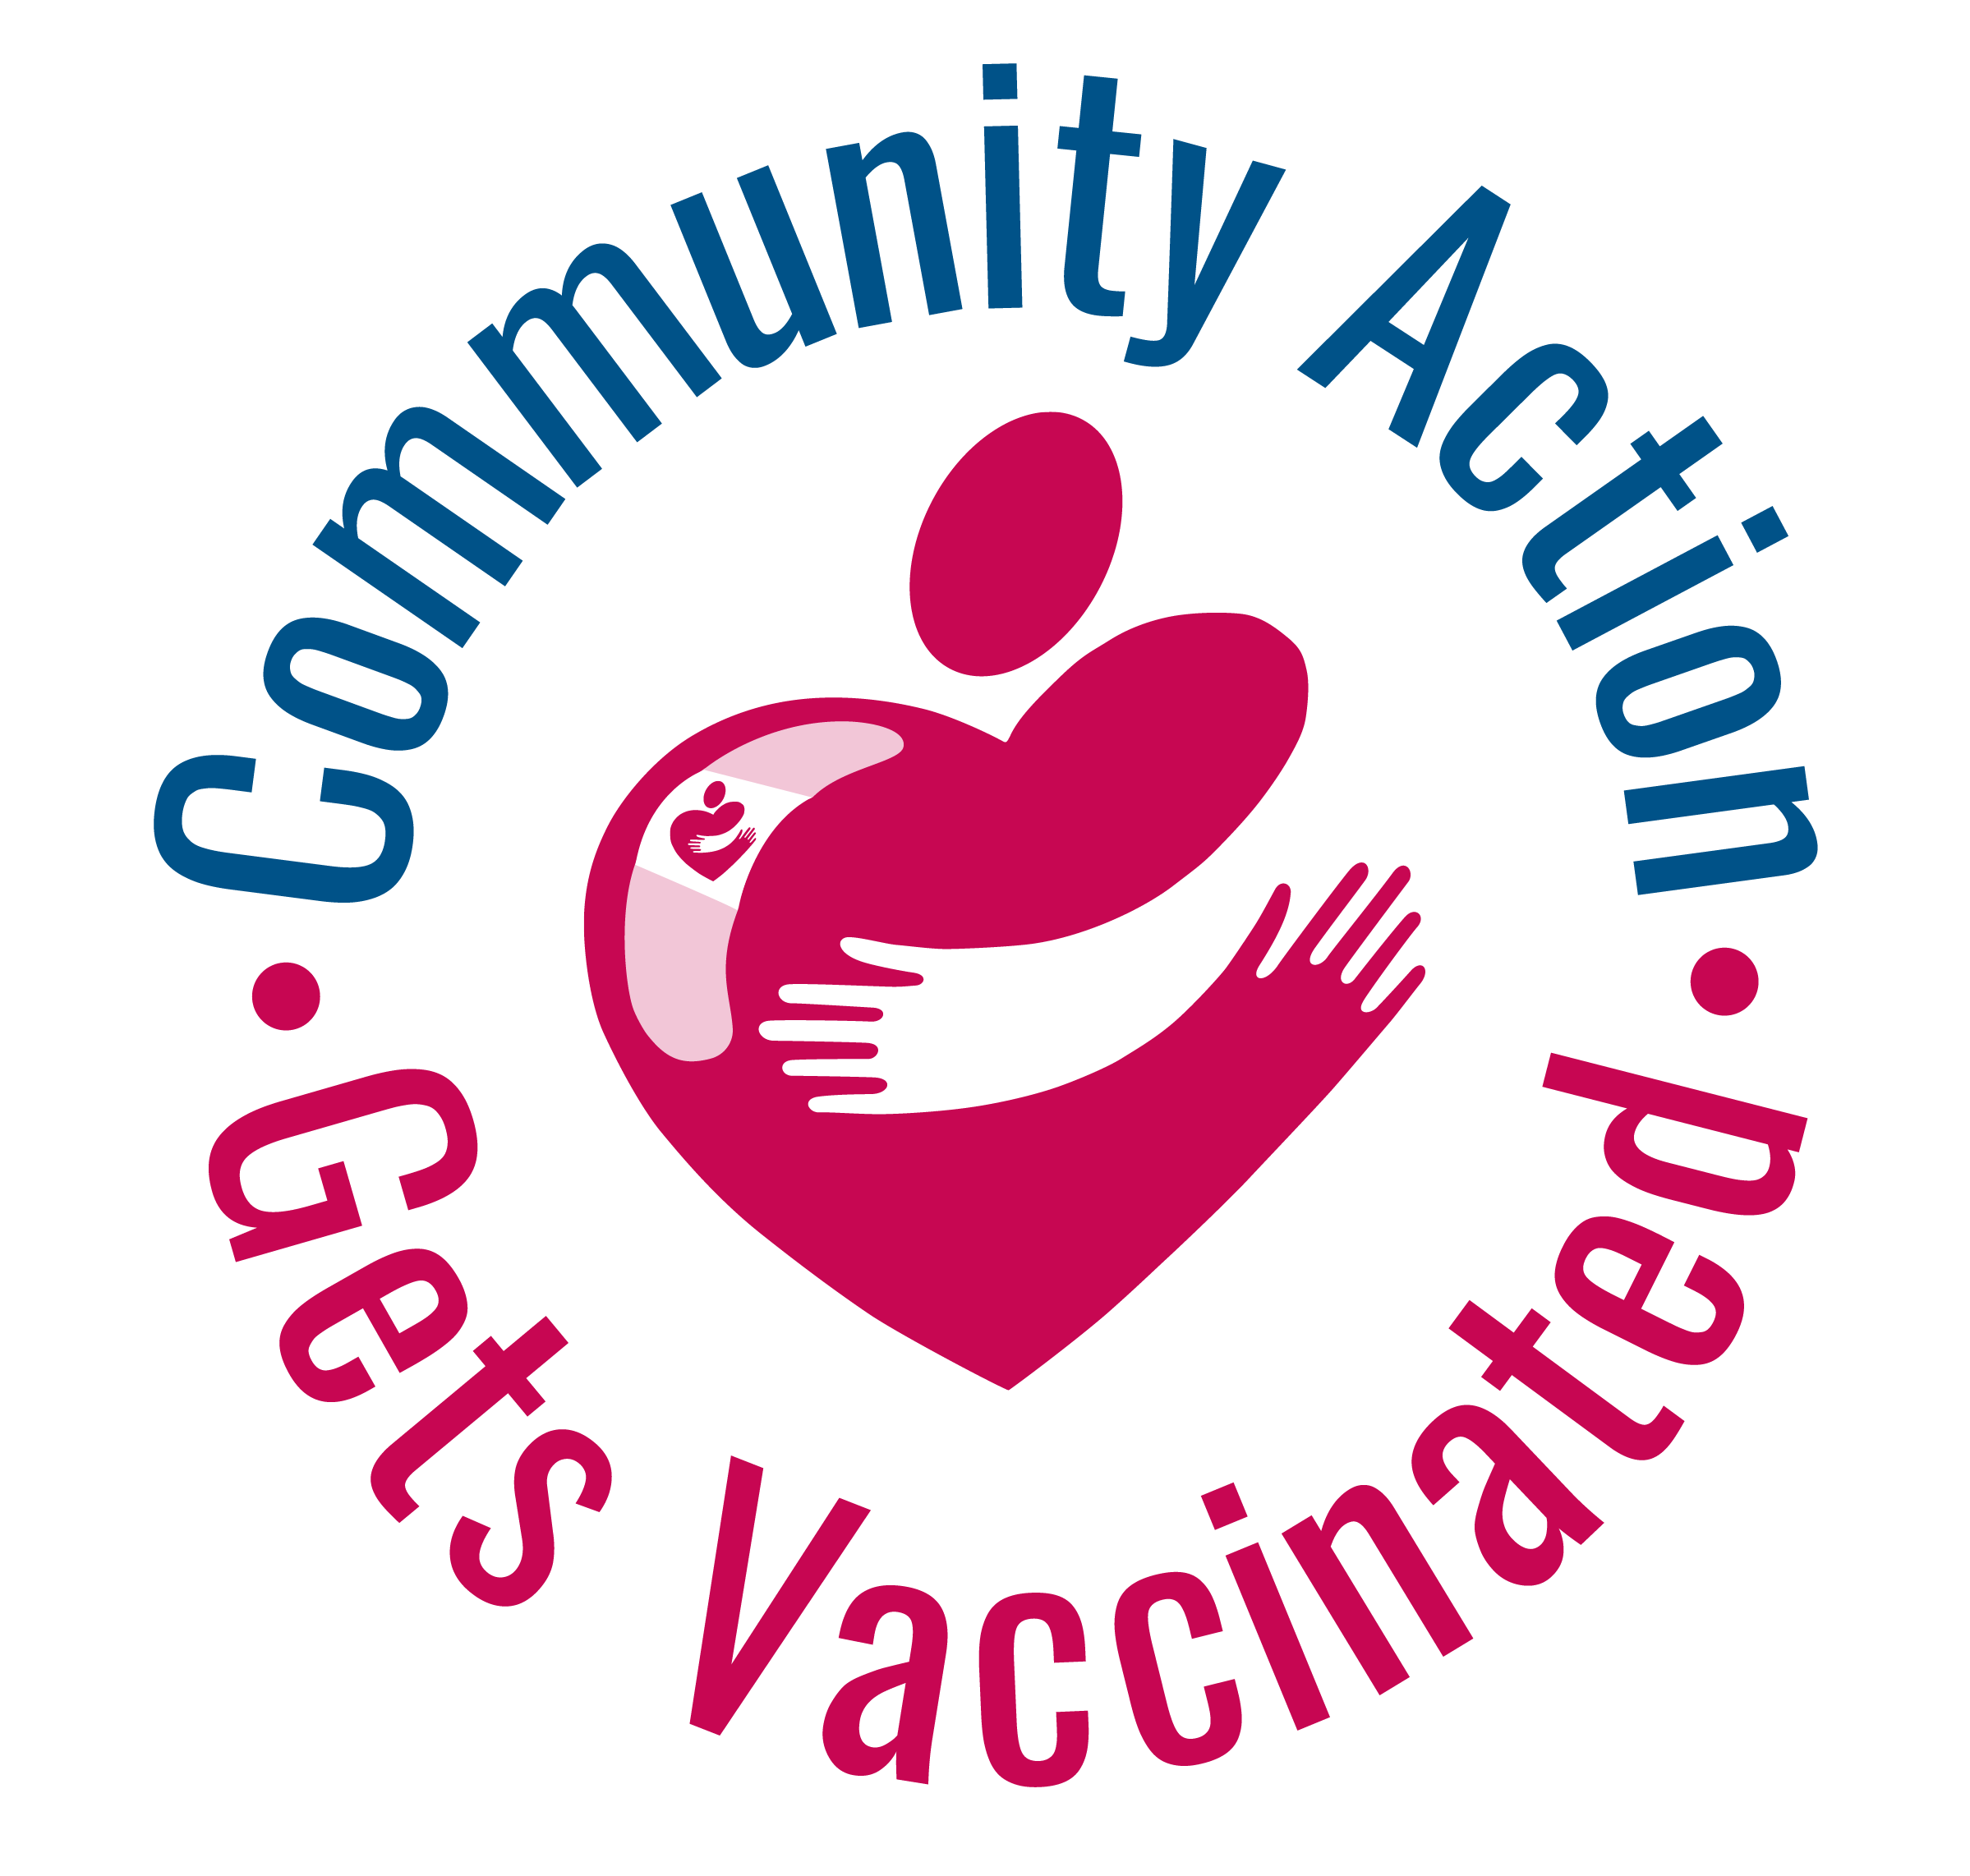 Community Action Vaccine Logo